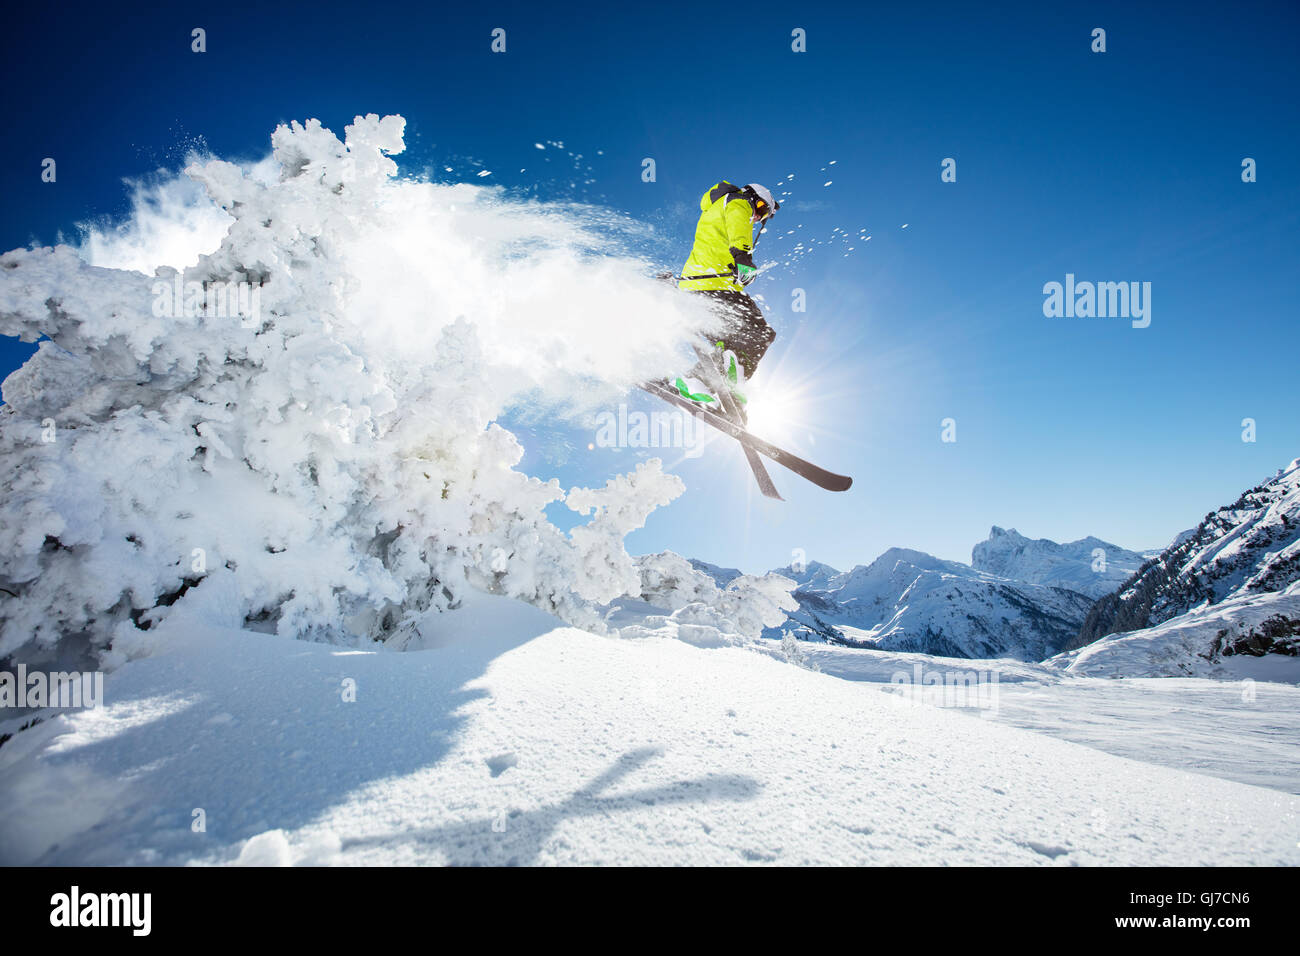 Skier at jump in Alpine mountains in beautiful sunny day. Copyspace for text - Stock Image